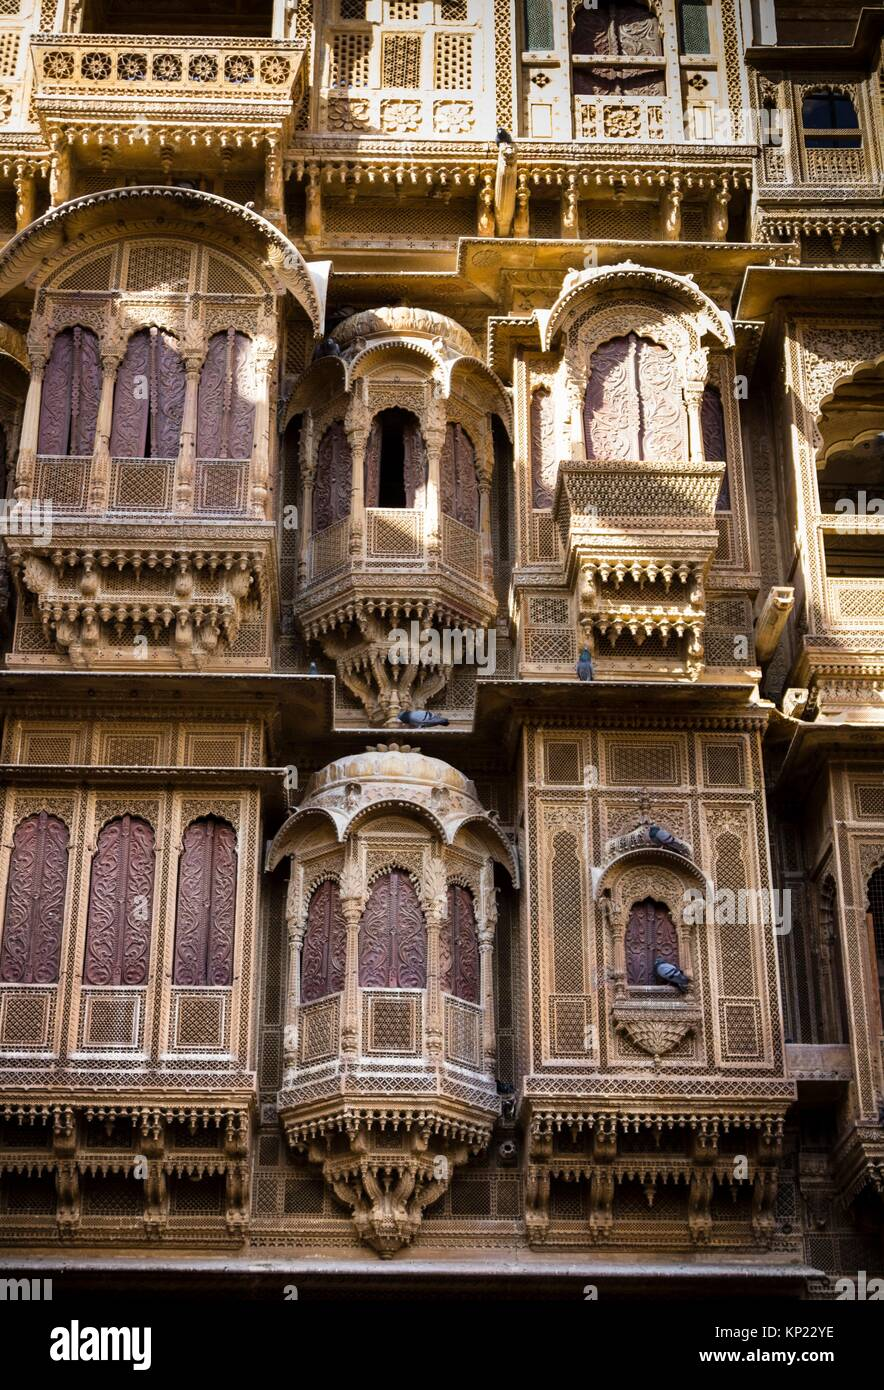 The ostentatious carvings etched out in sandstone with infinite detail and then painstakingly pieced together in - Stock Image